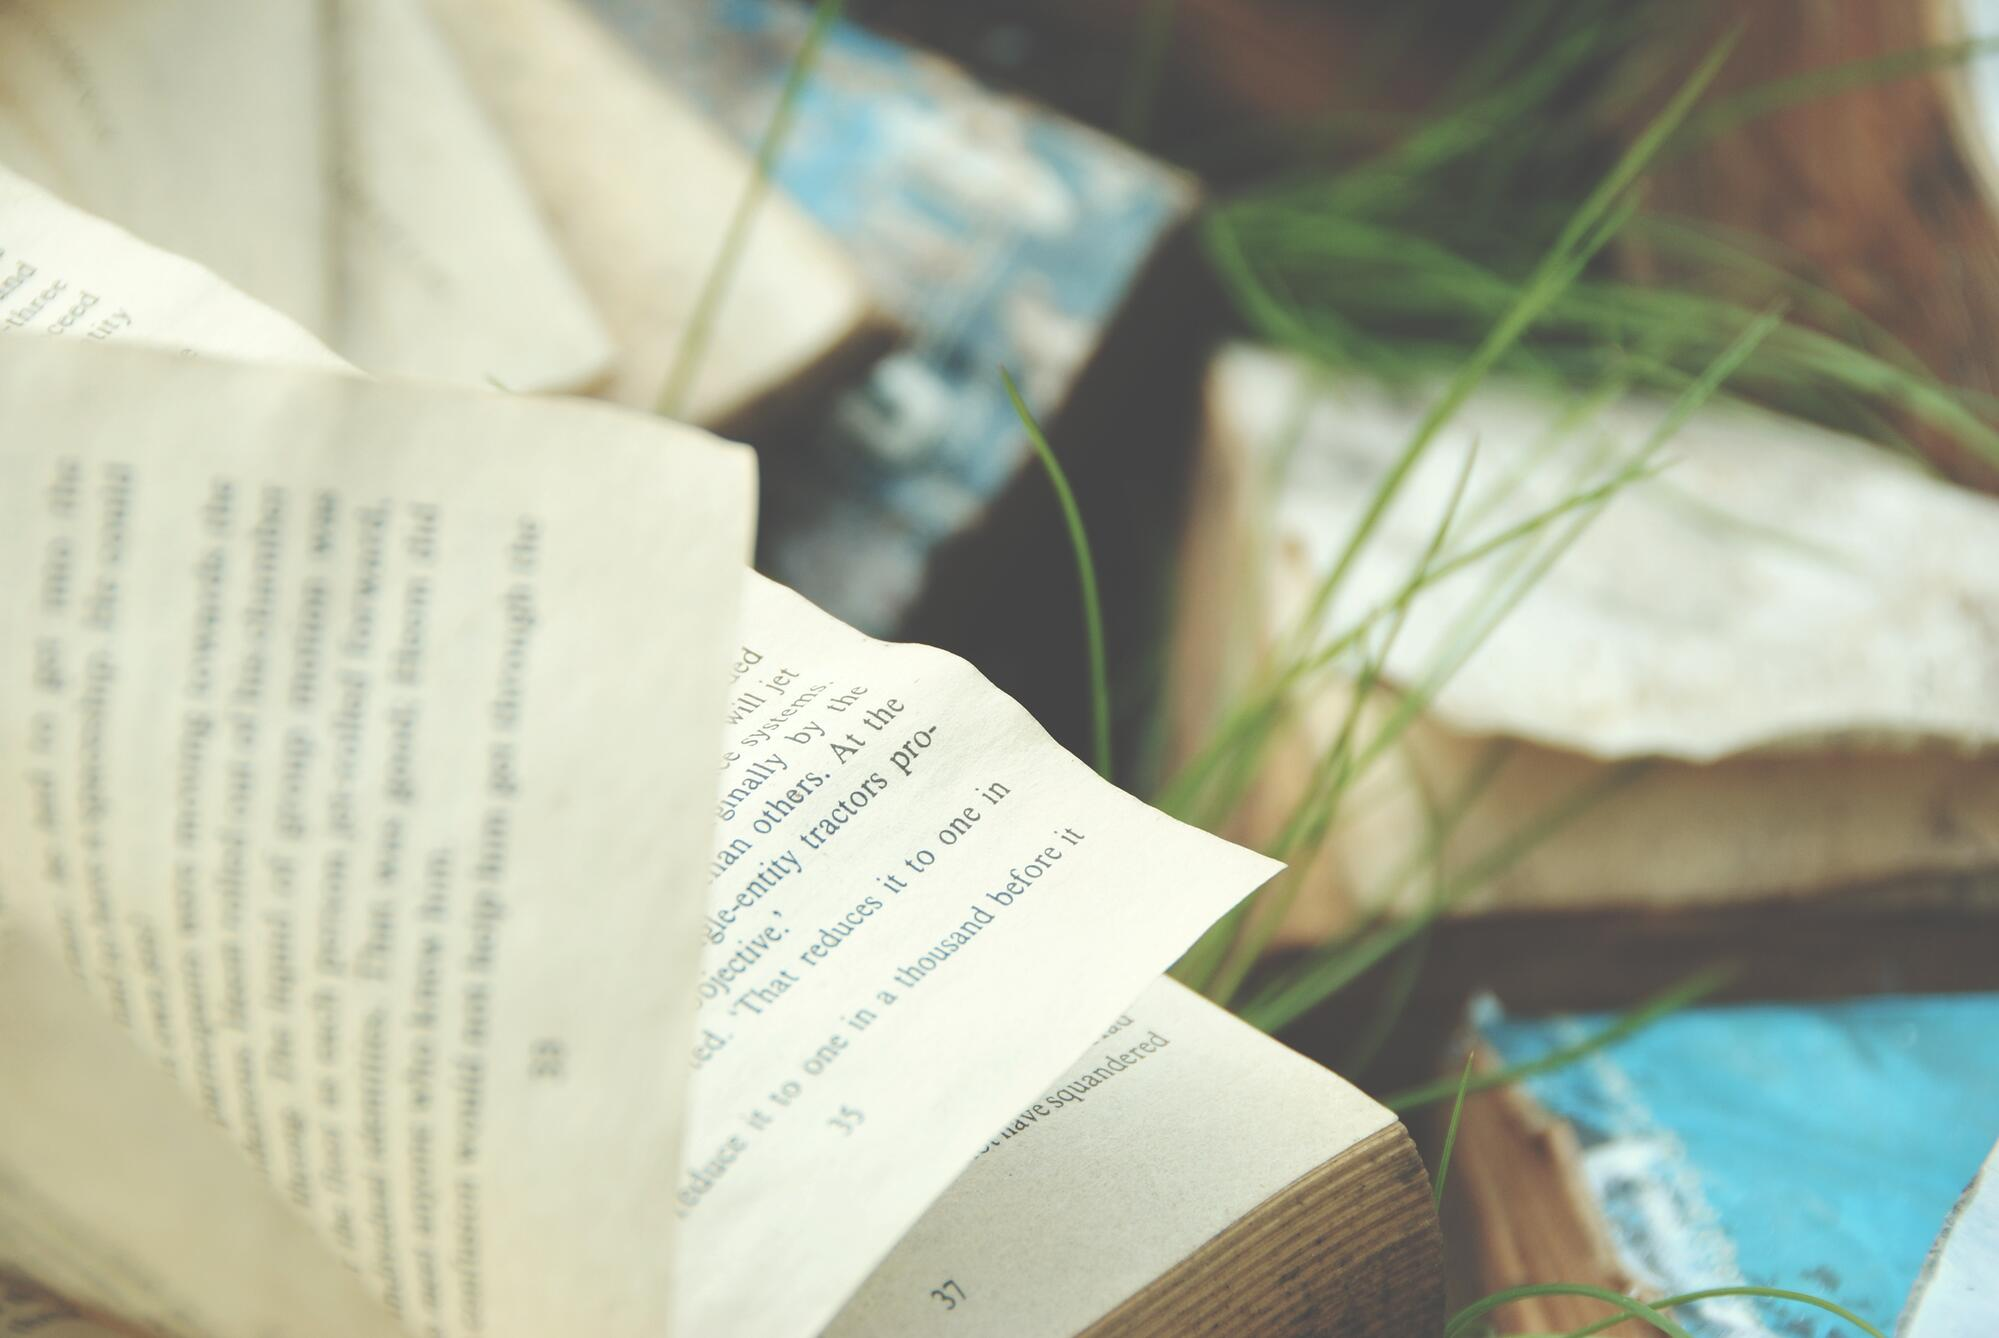 Books we are reading this summer